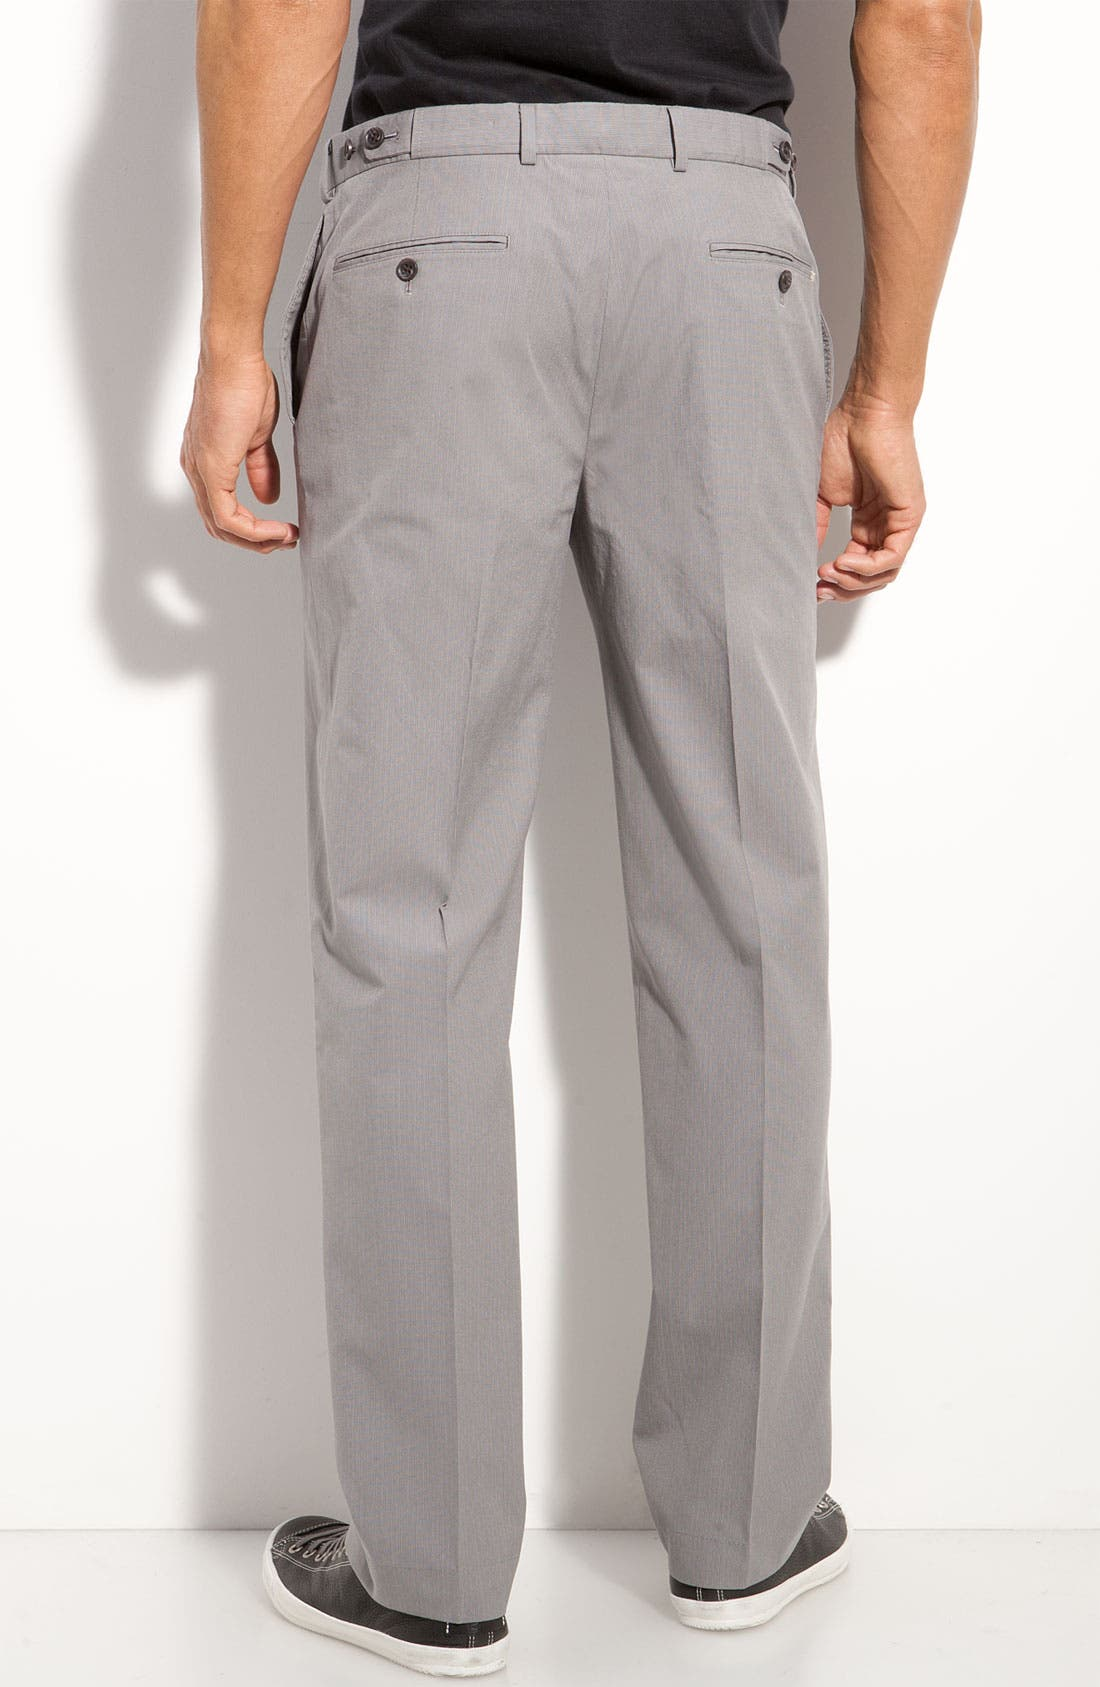 WALLIN & BROS.,                             Flat Front Stripe Pants,                             Alternate thumbnail 3, color,                             020